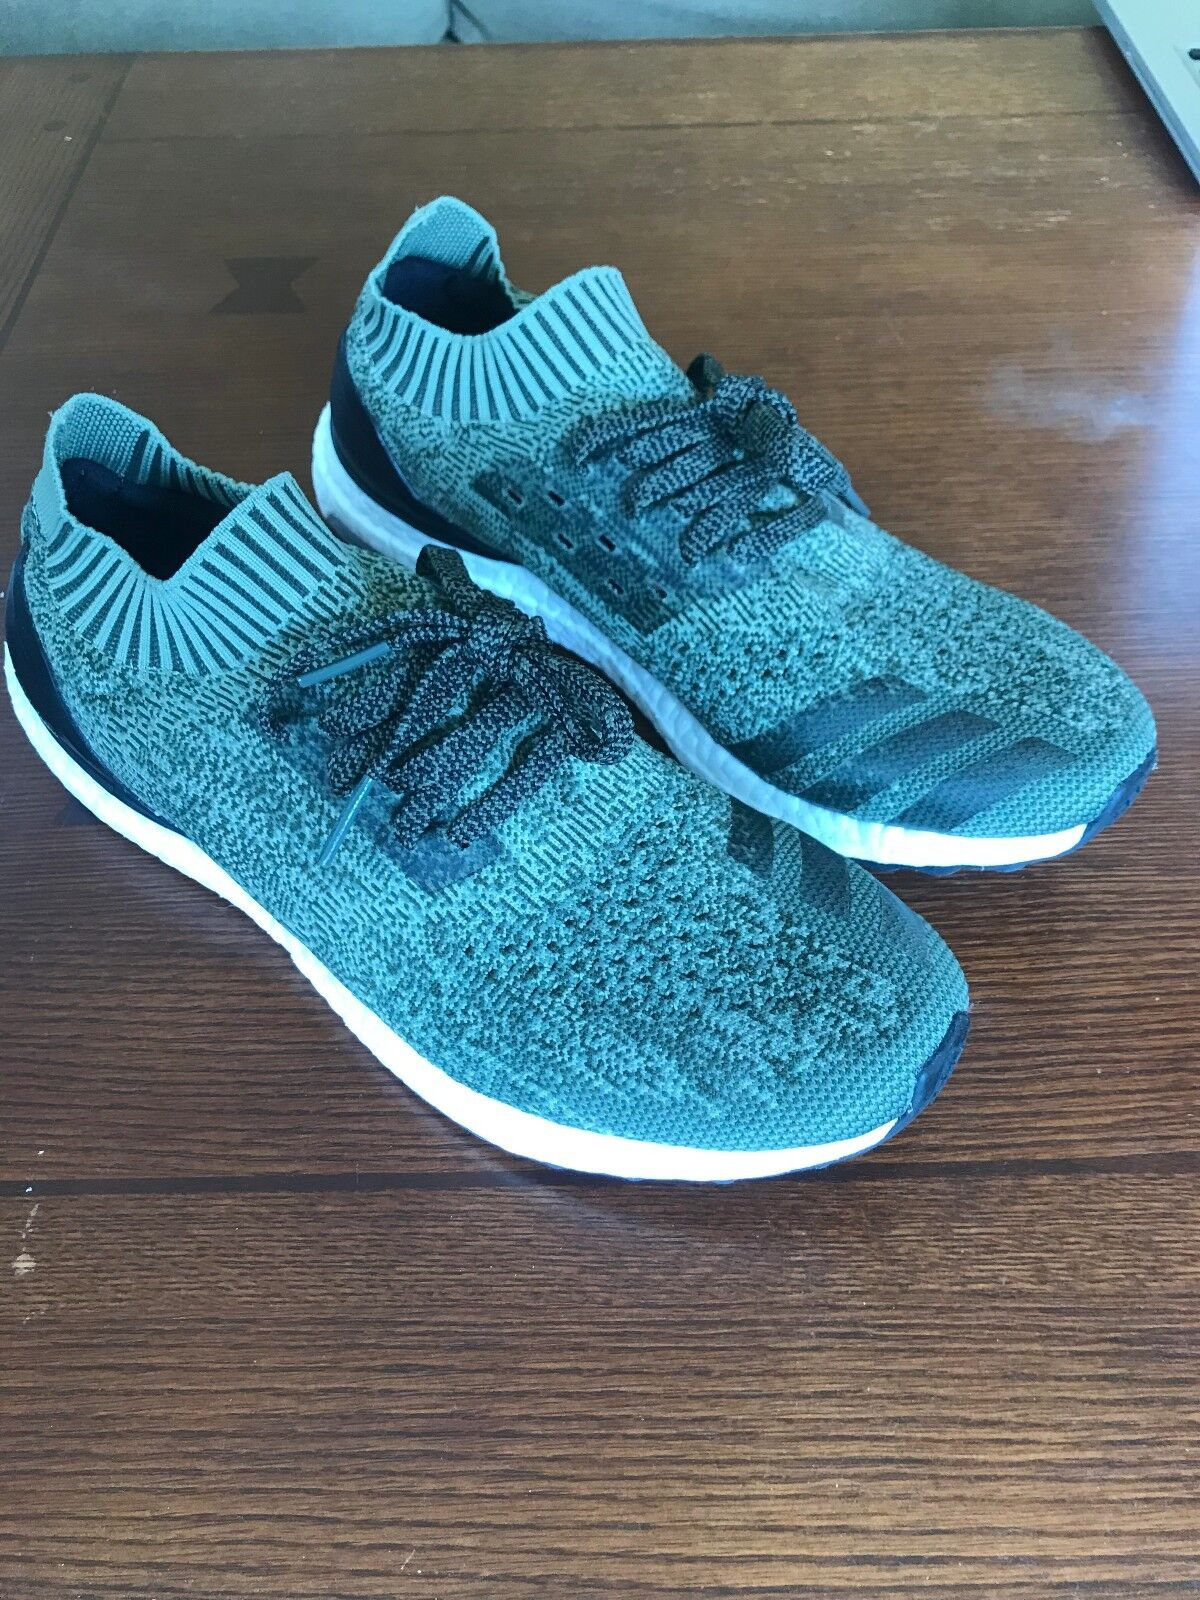 Adidas Men's Ultra Boost Uncaged Olive Green 11.5